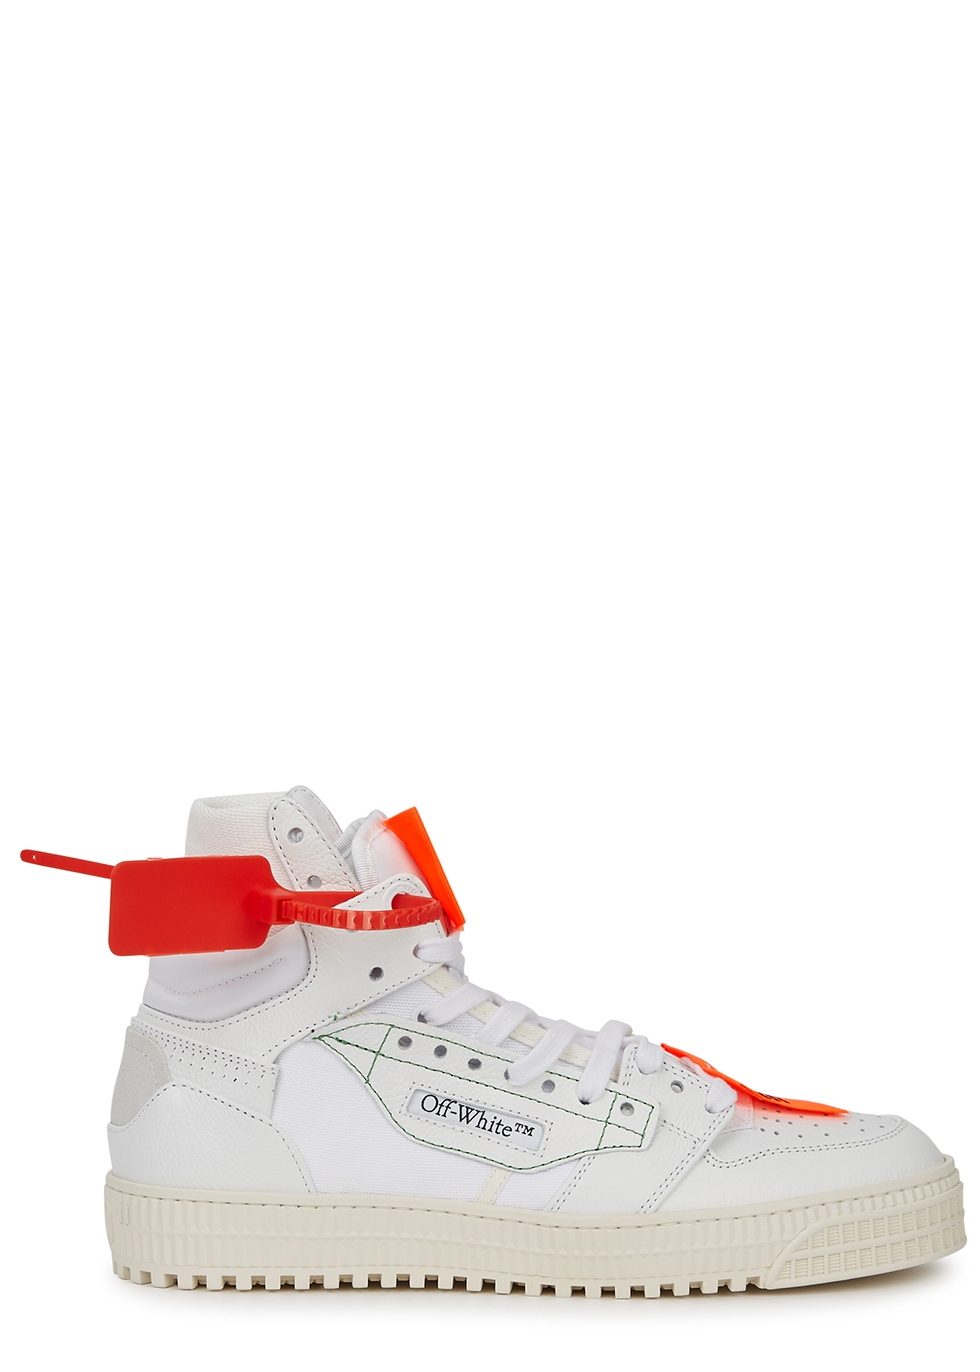 off white trainers womens